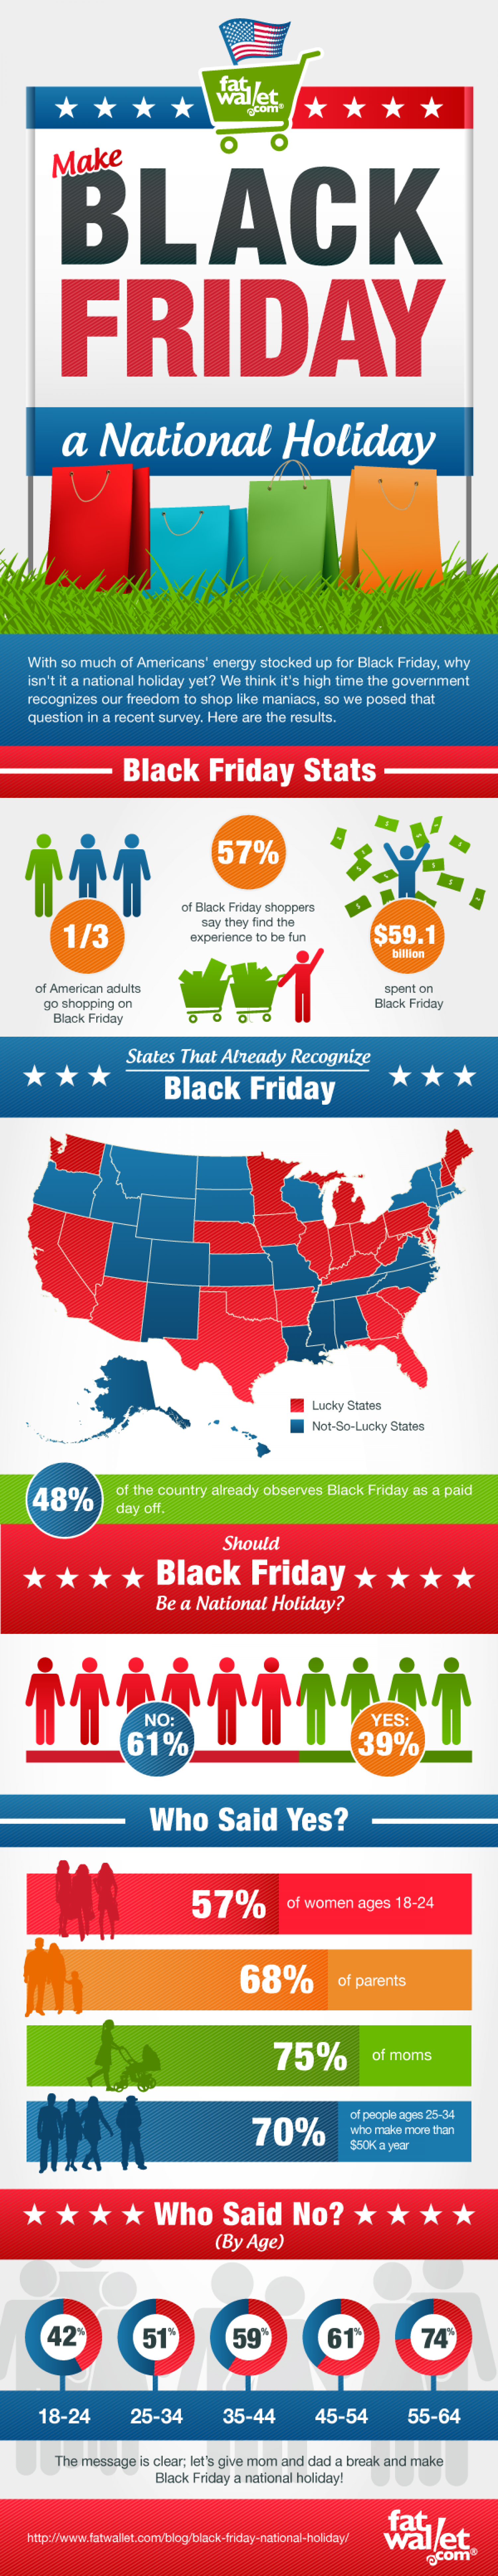 Make Black Friday National Holiday!  Infographic